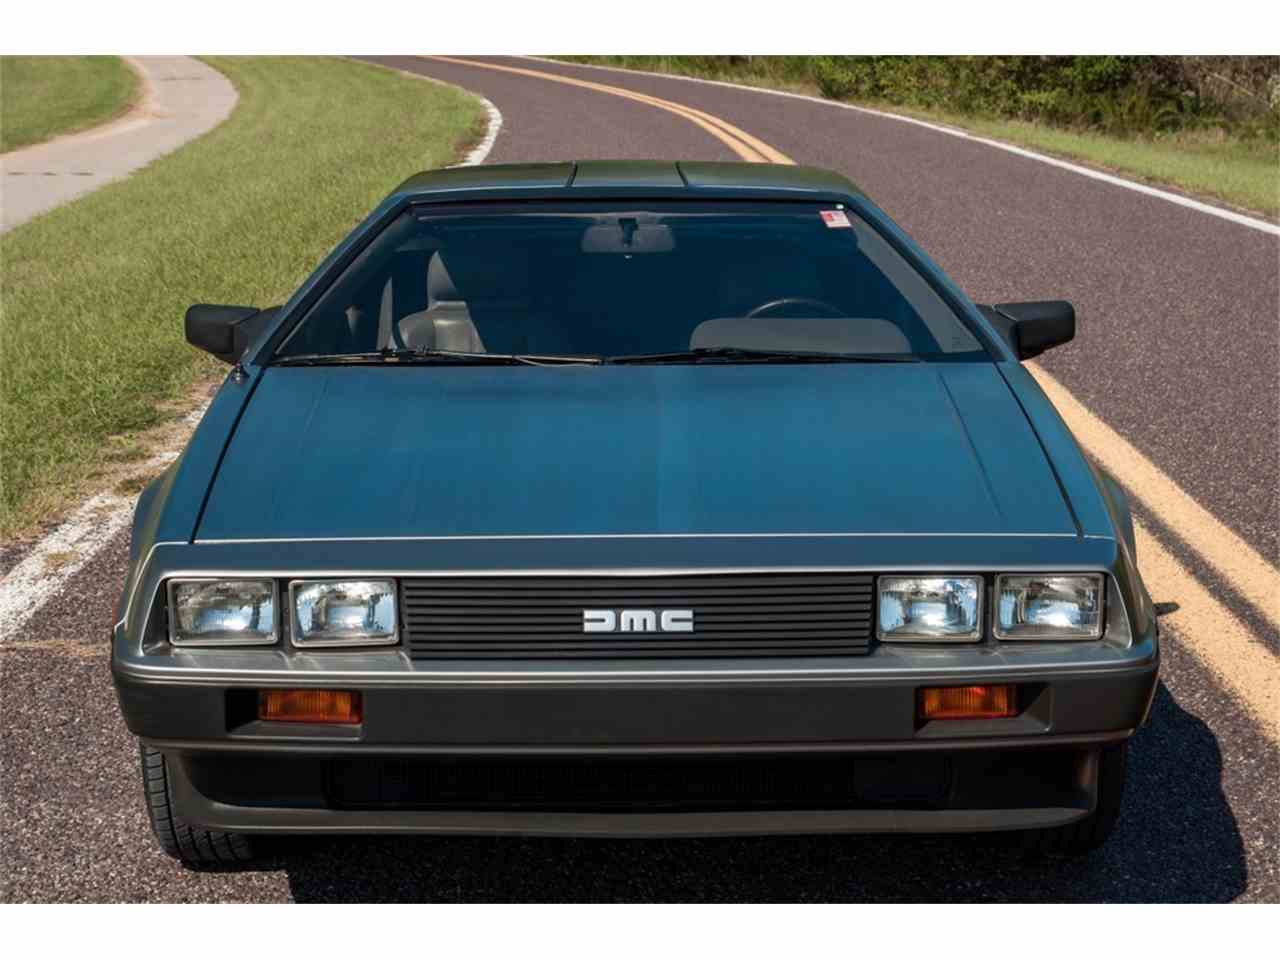 Large Picture of '81 DeLorean DMC-12 located in St. Louis Missouri Offered by MotoeXotica Classic Cars - JPXR